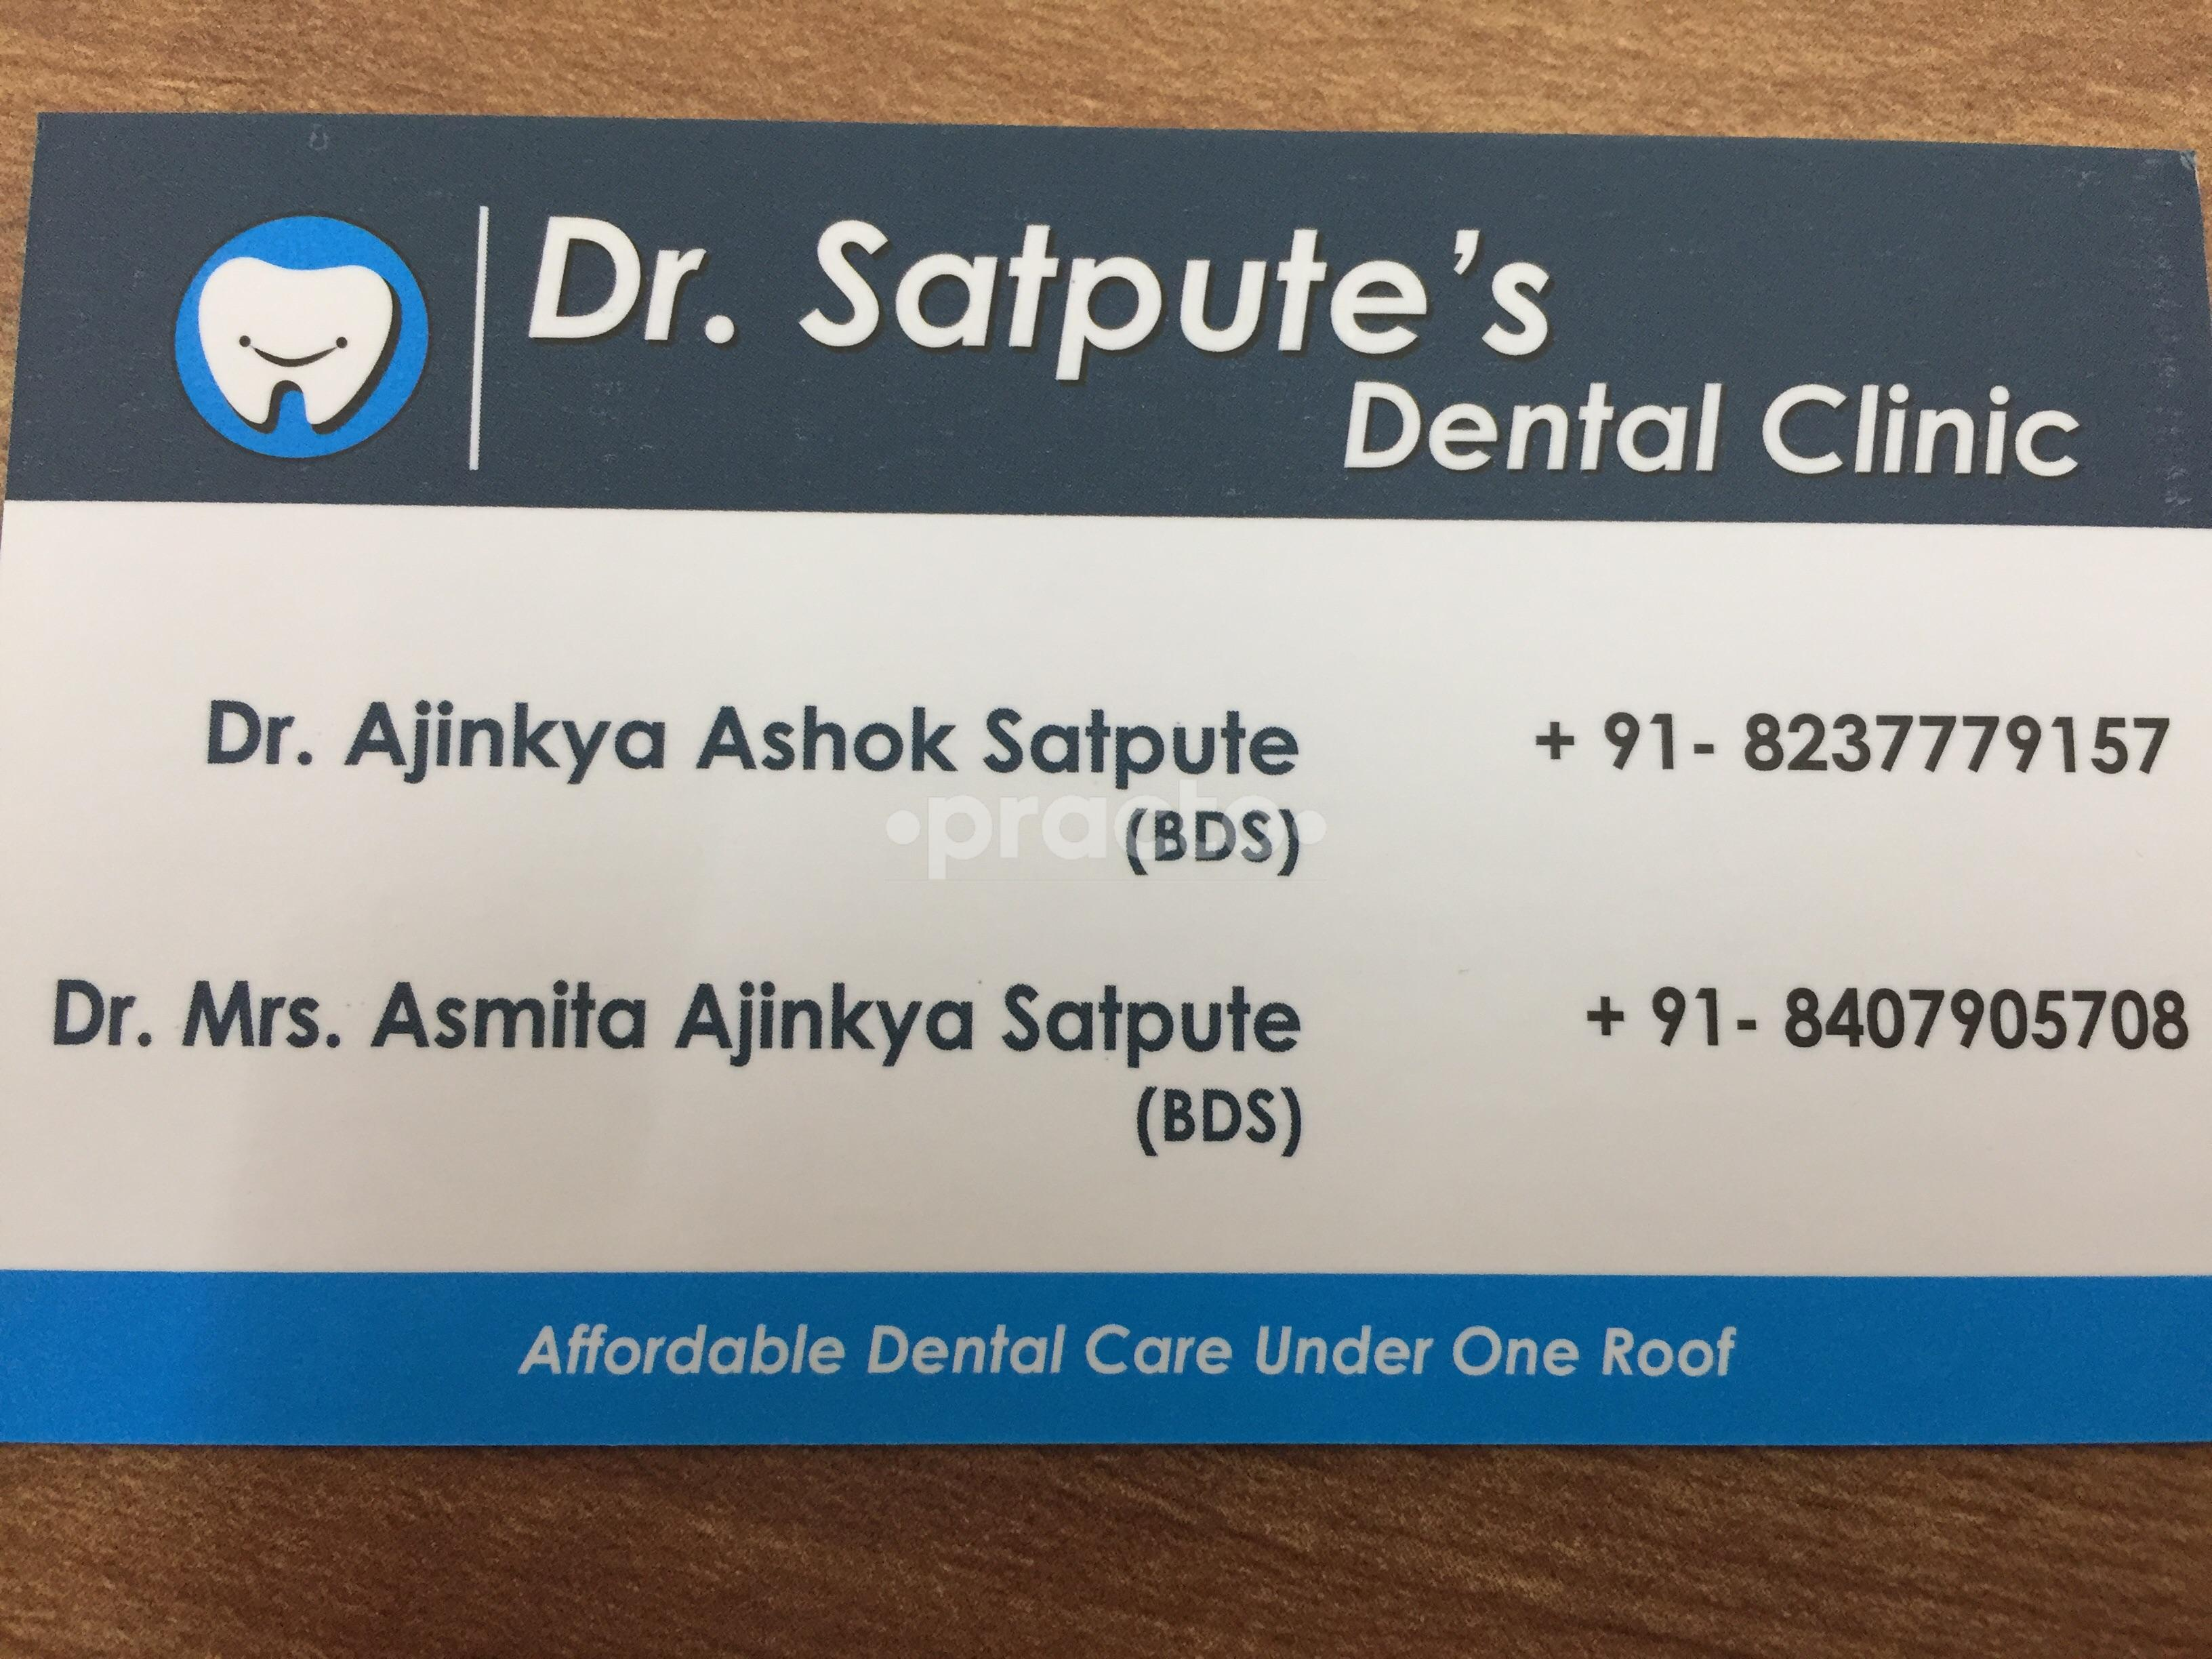 Dr. Satpute Dental clinic